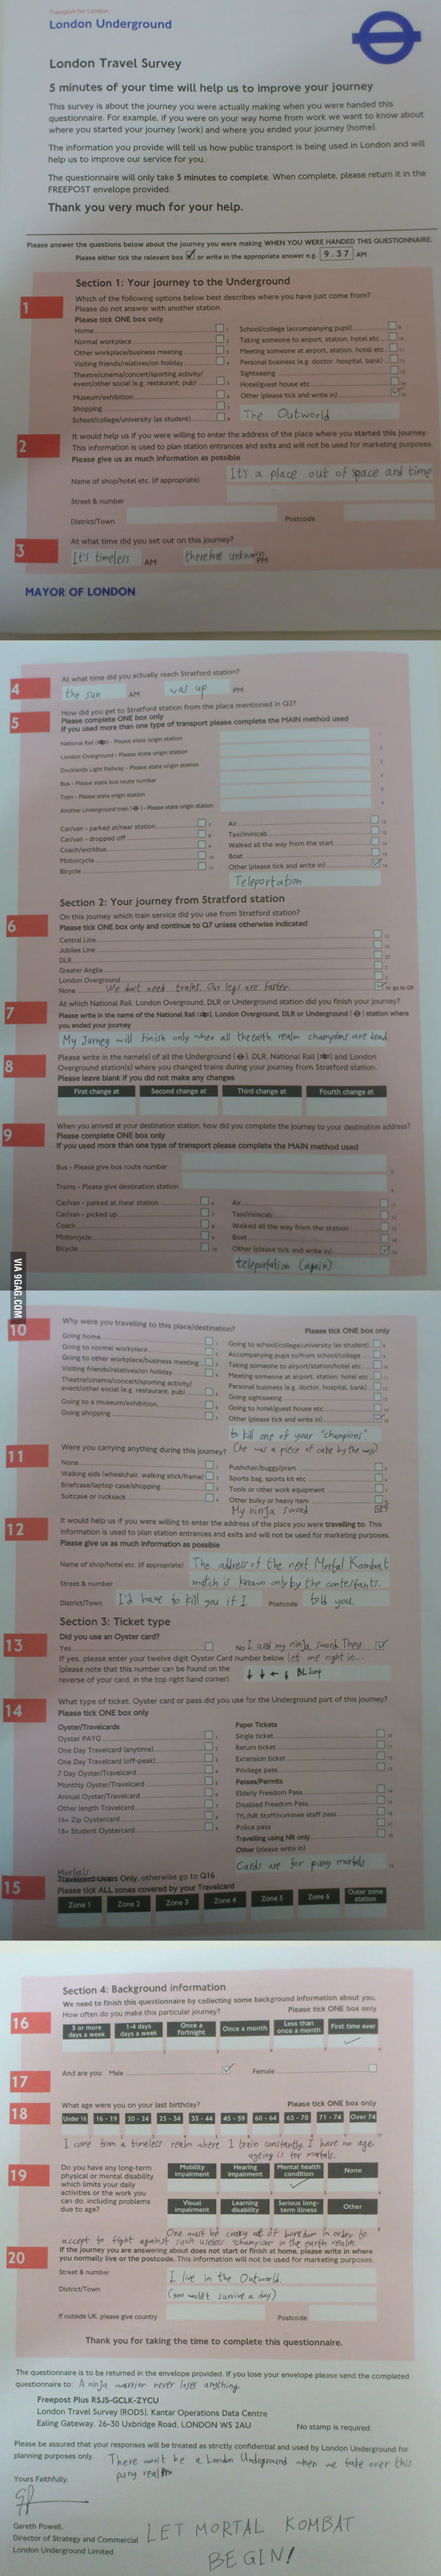 London Underground Questionnaire Mortal Kombat